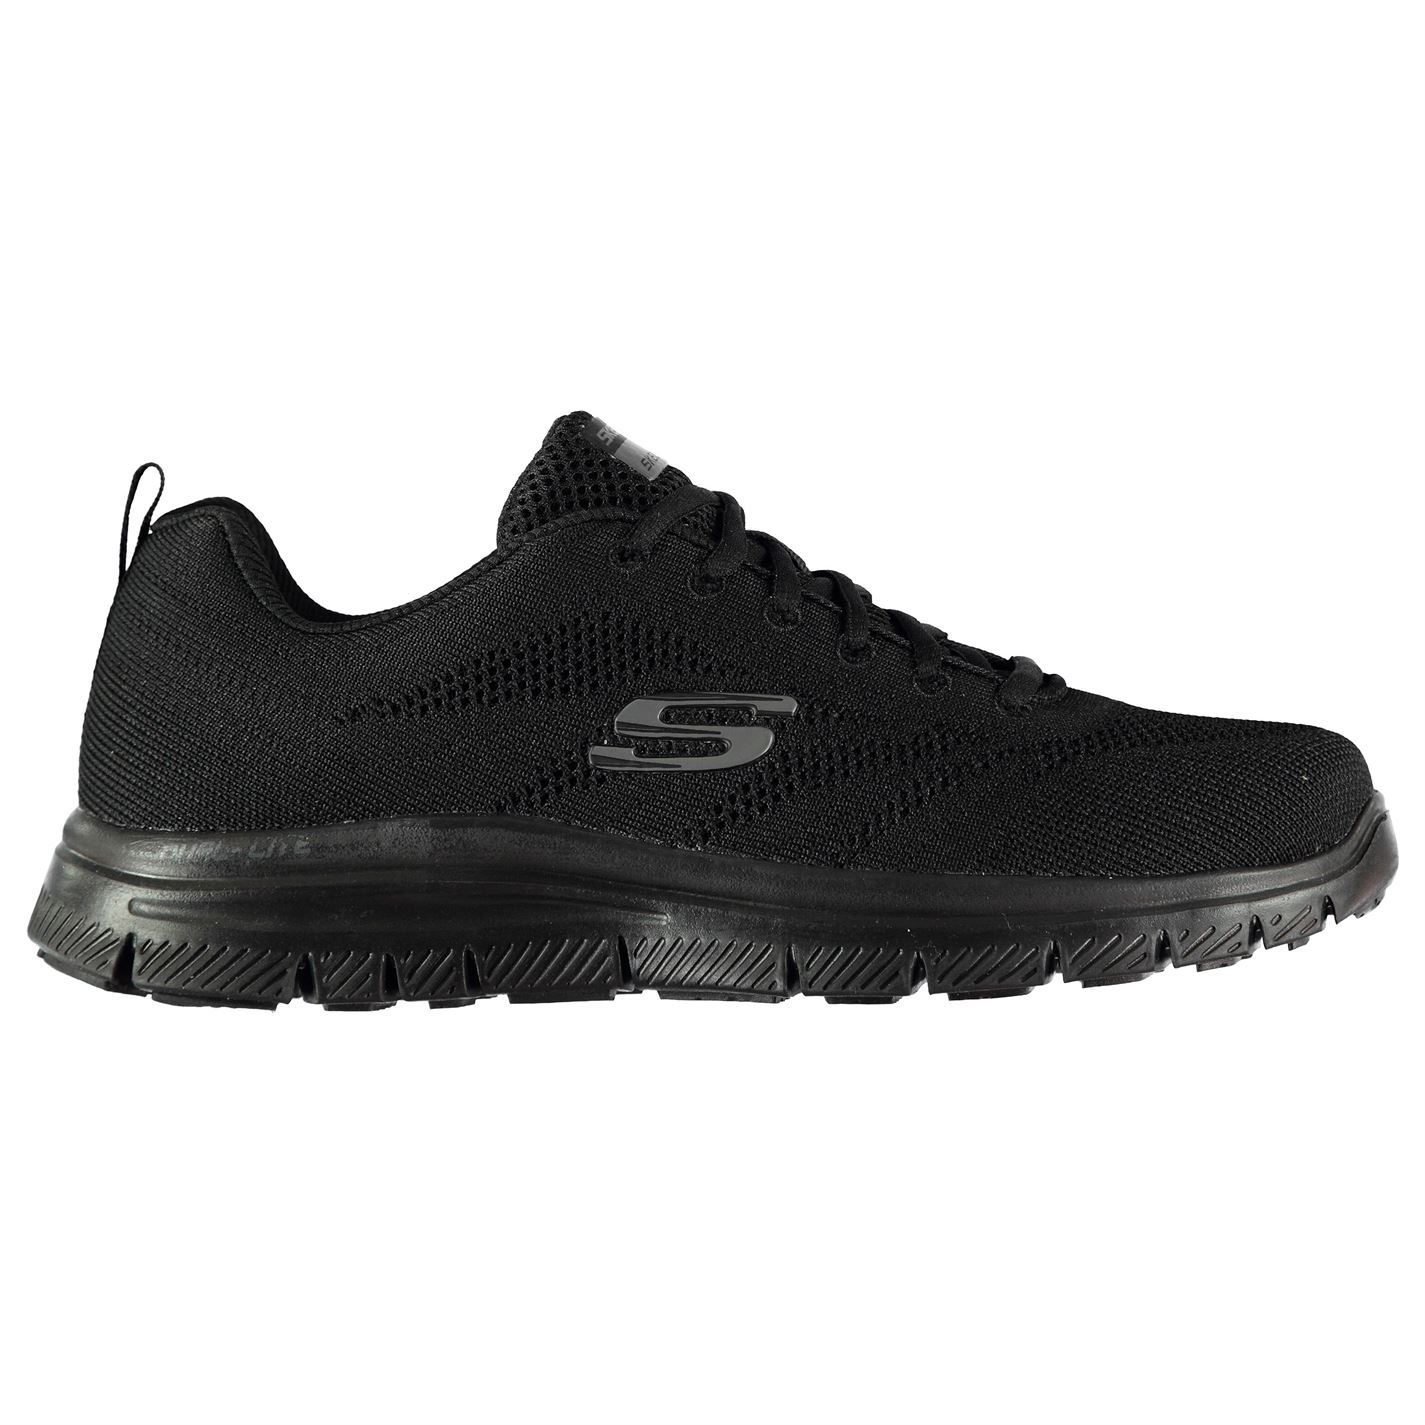 Skechers Memory Foam Knit Shoes Mens Athleisure Footwear Trainers